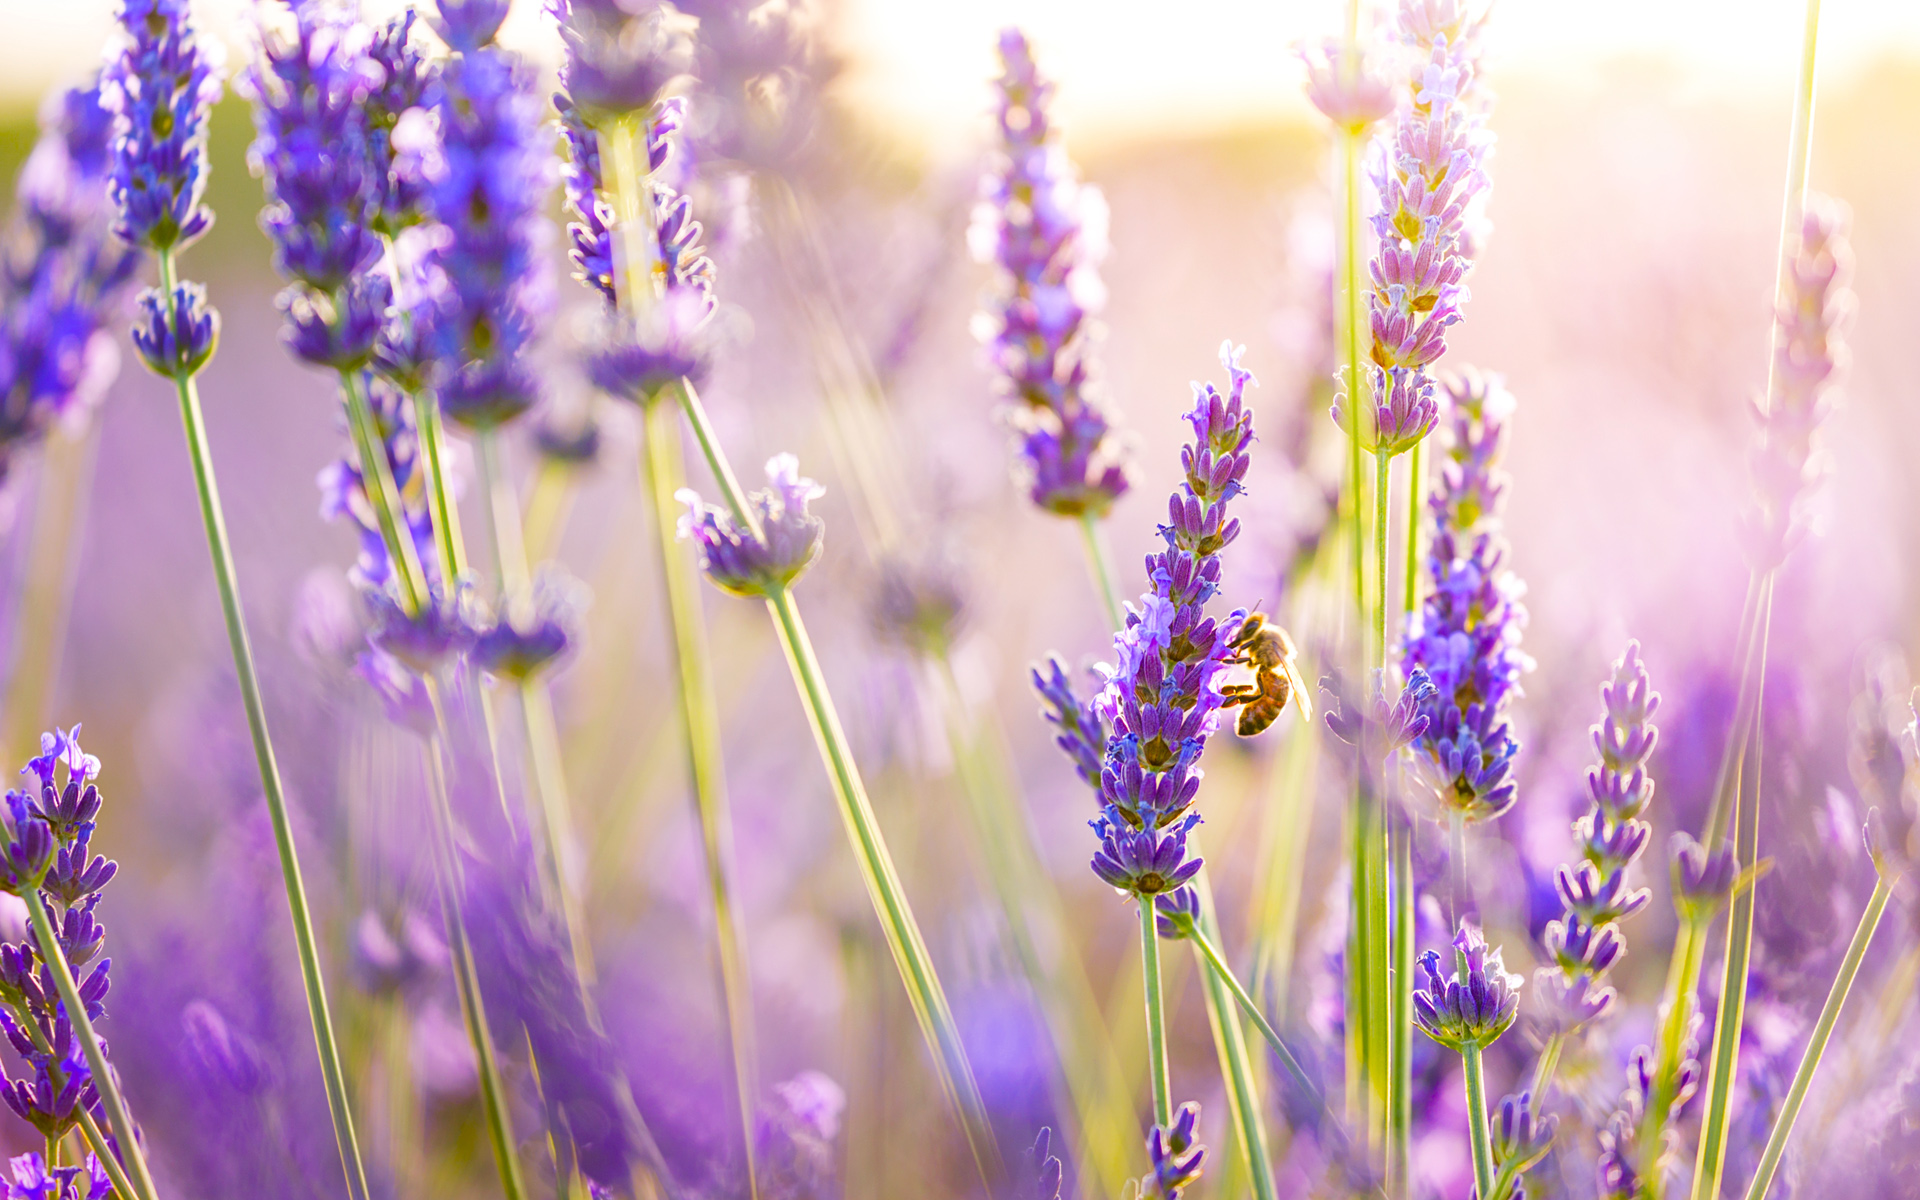 Bee enjoying fresh Lavender flowers